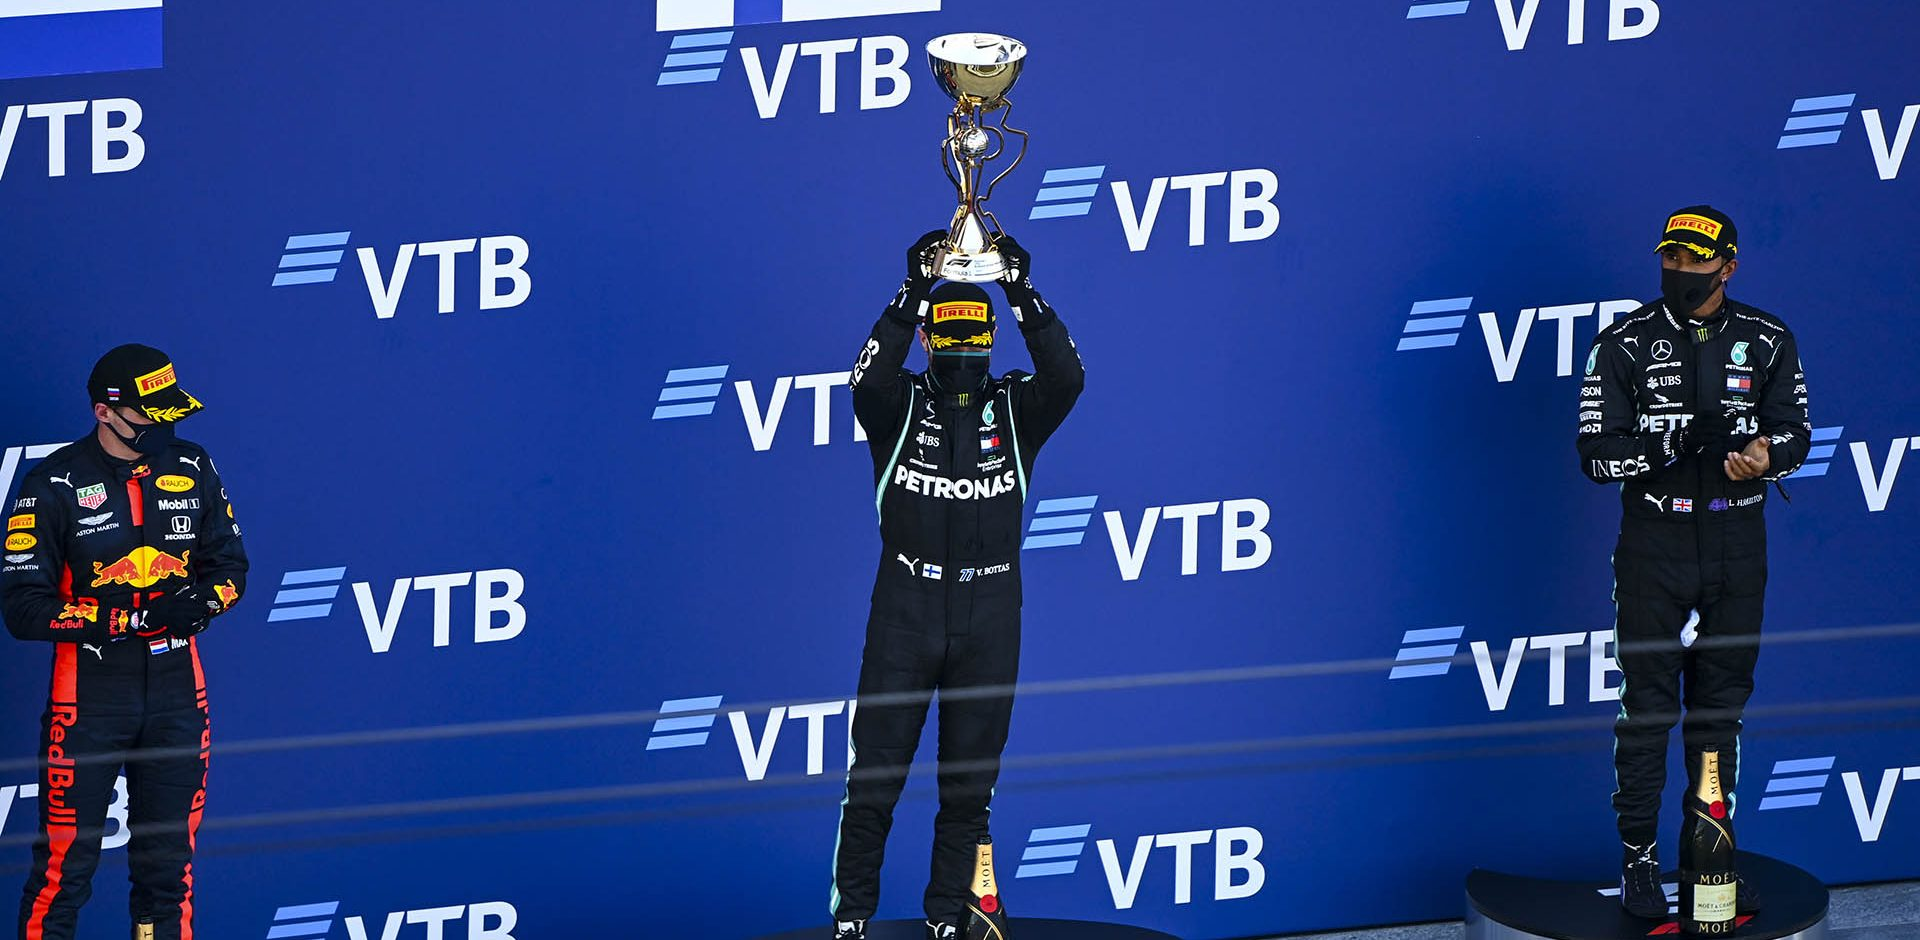 SOCHI AUTODROM, RUSSIAN FEDERATION - SEPTEMBER 27: Max Verstappen, Red Bull Racing, Race Winner Valtteri Bottas, Mercedes-AMG Petronas F1 and Lewis Hamilton, Mercedes-AMG Petronas F1 celebrate on the podium with the trophy during the Russian GP at Sochi Autodrom on Sunday September 27, 2020 in Sochi, Russian Federation. (Photo by Mark Sutton / LAT Images)